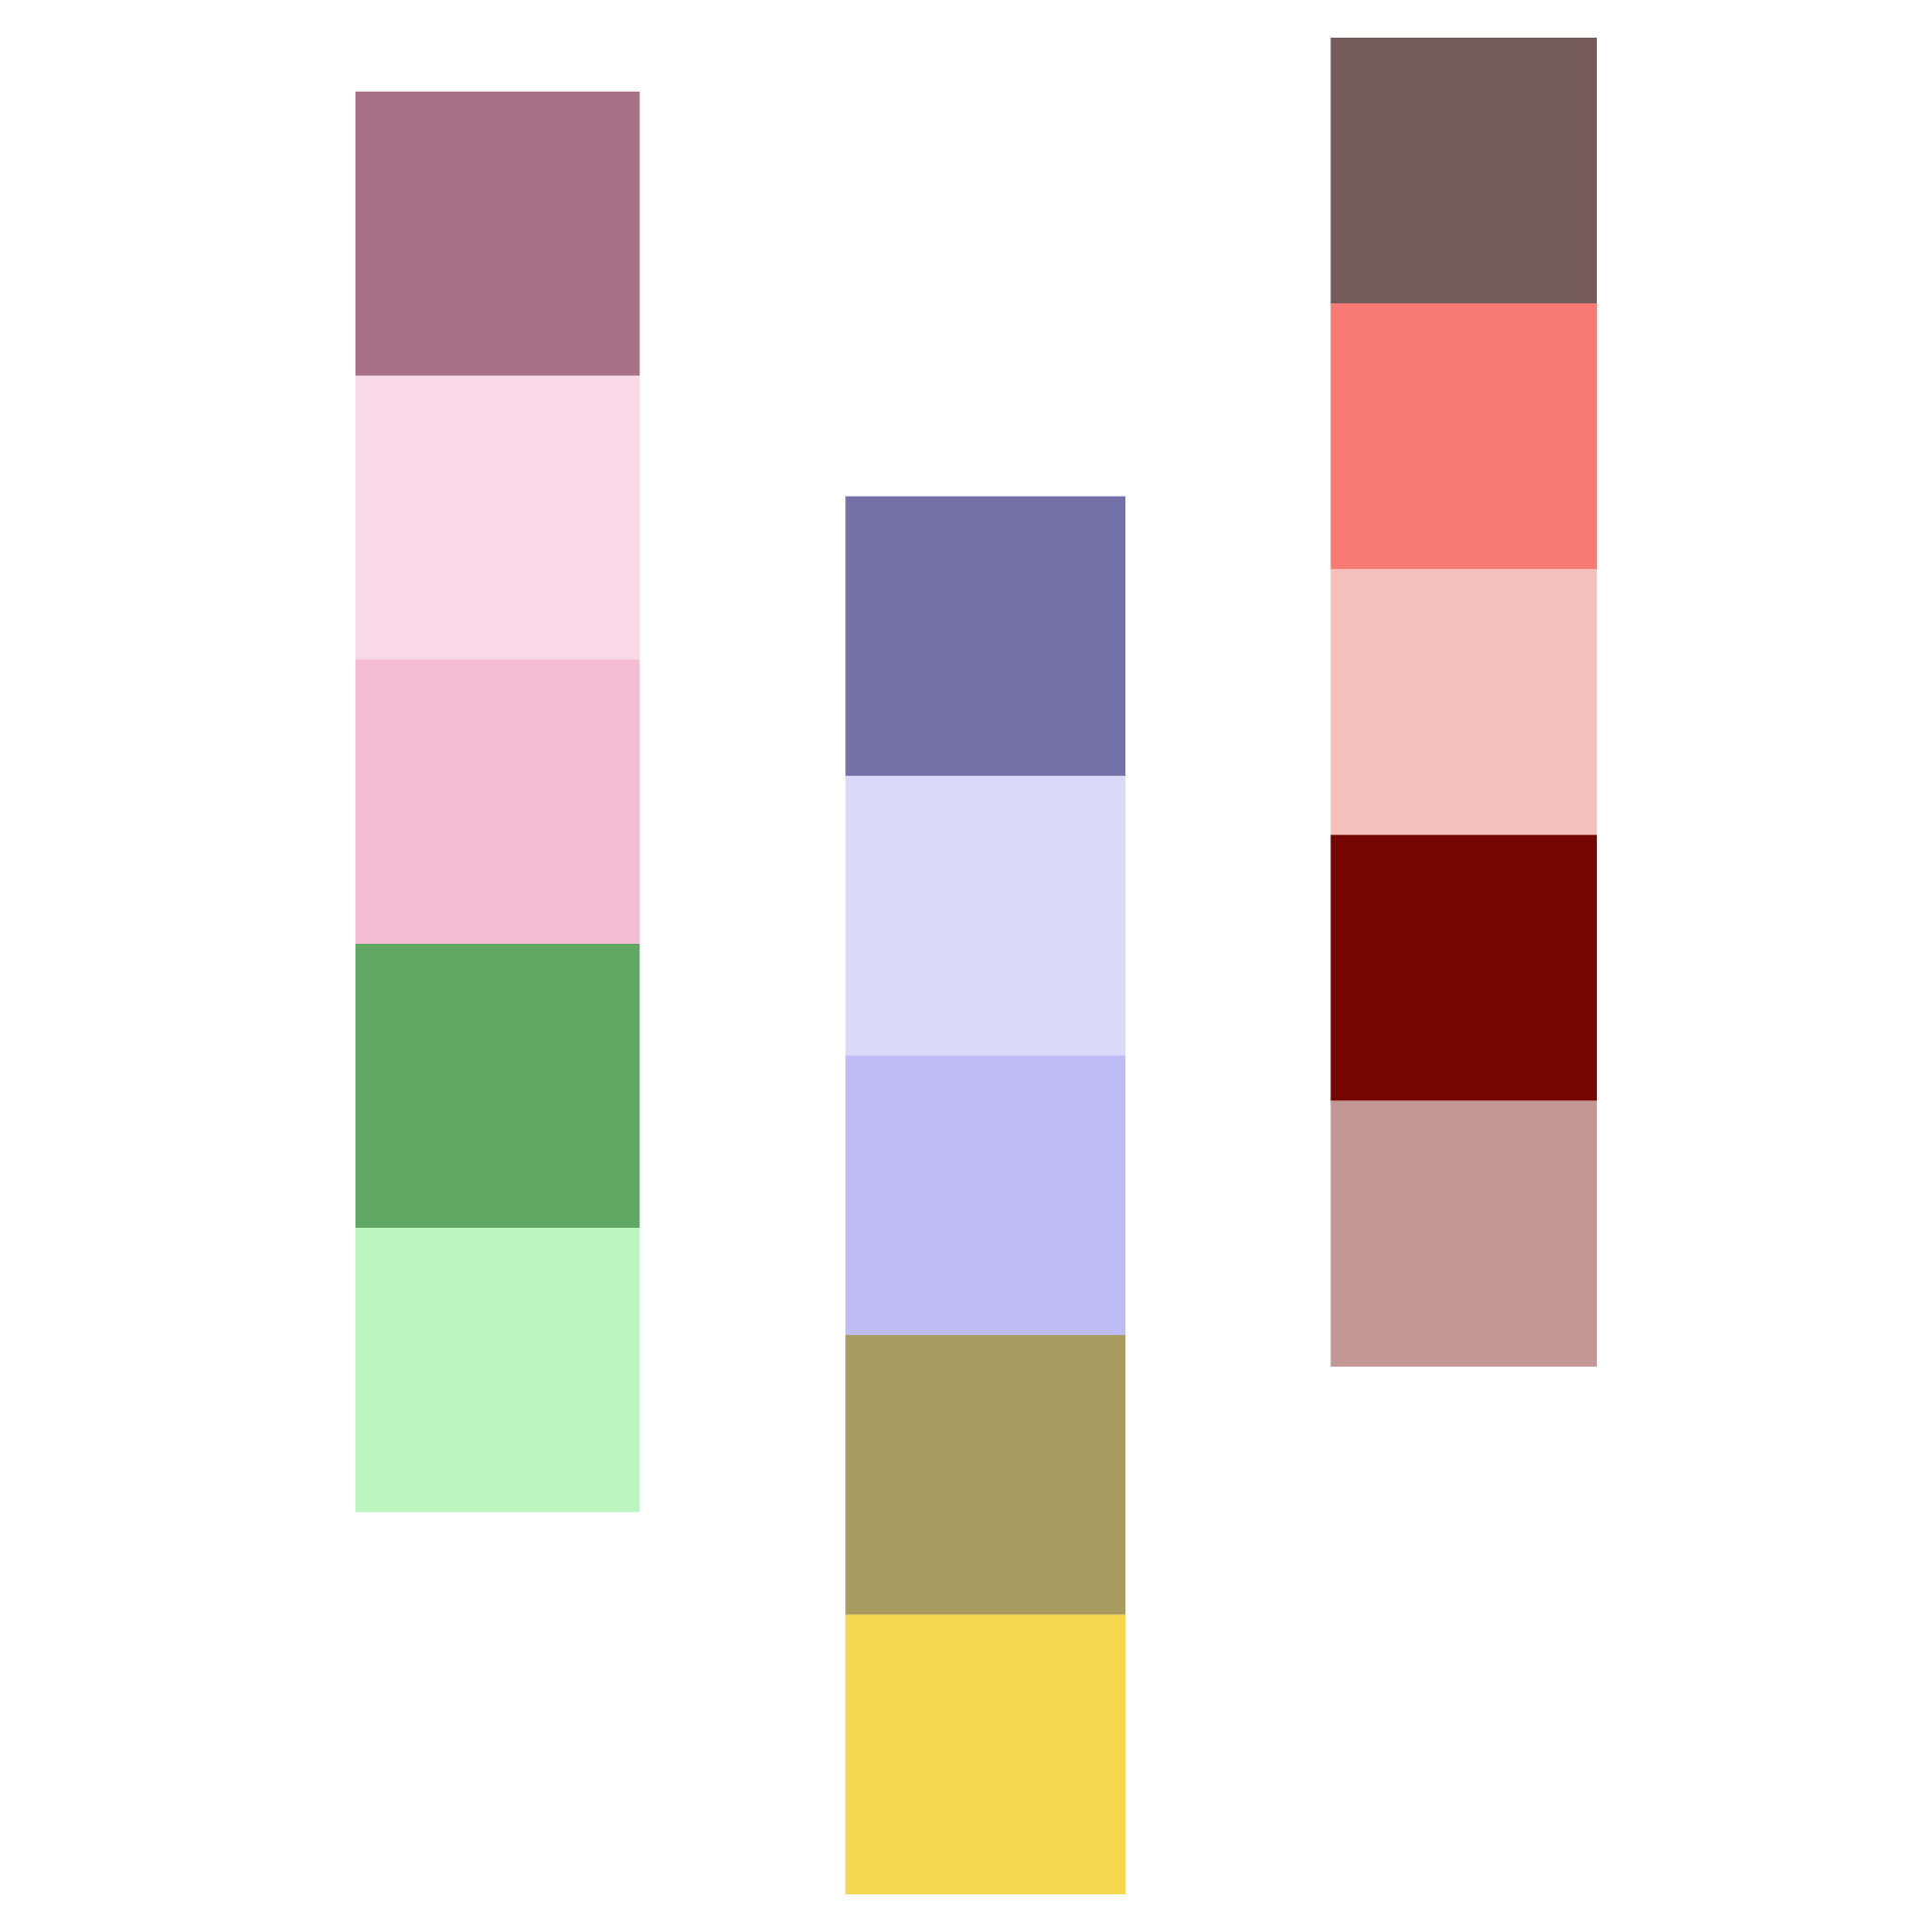 Colour swatches complimenting design